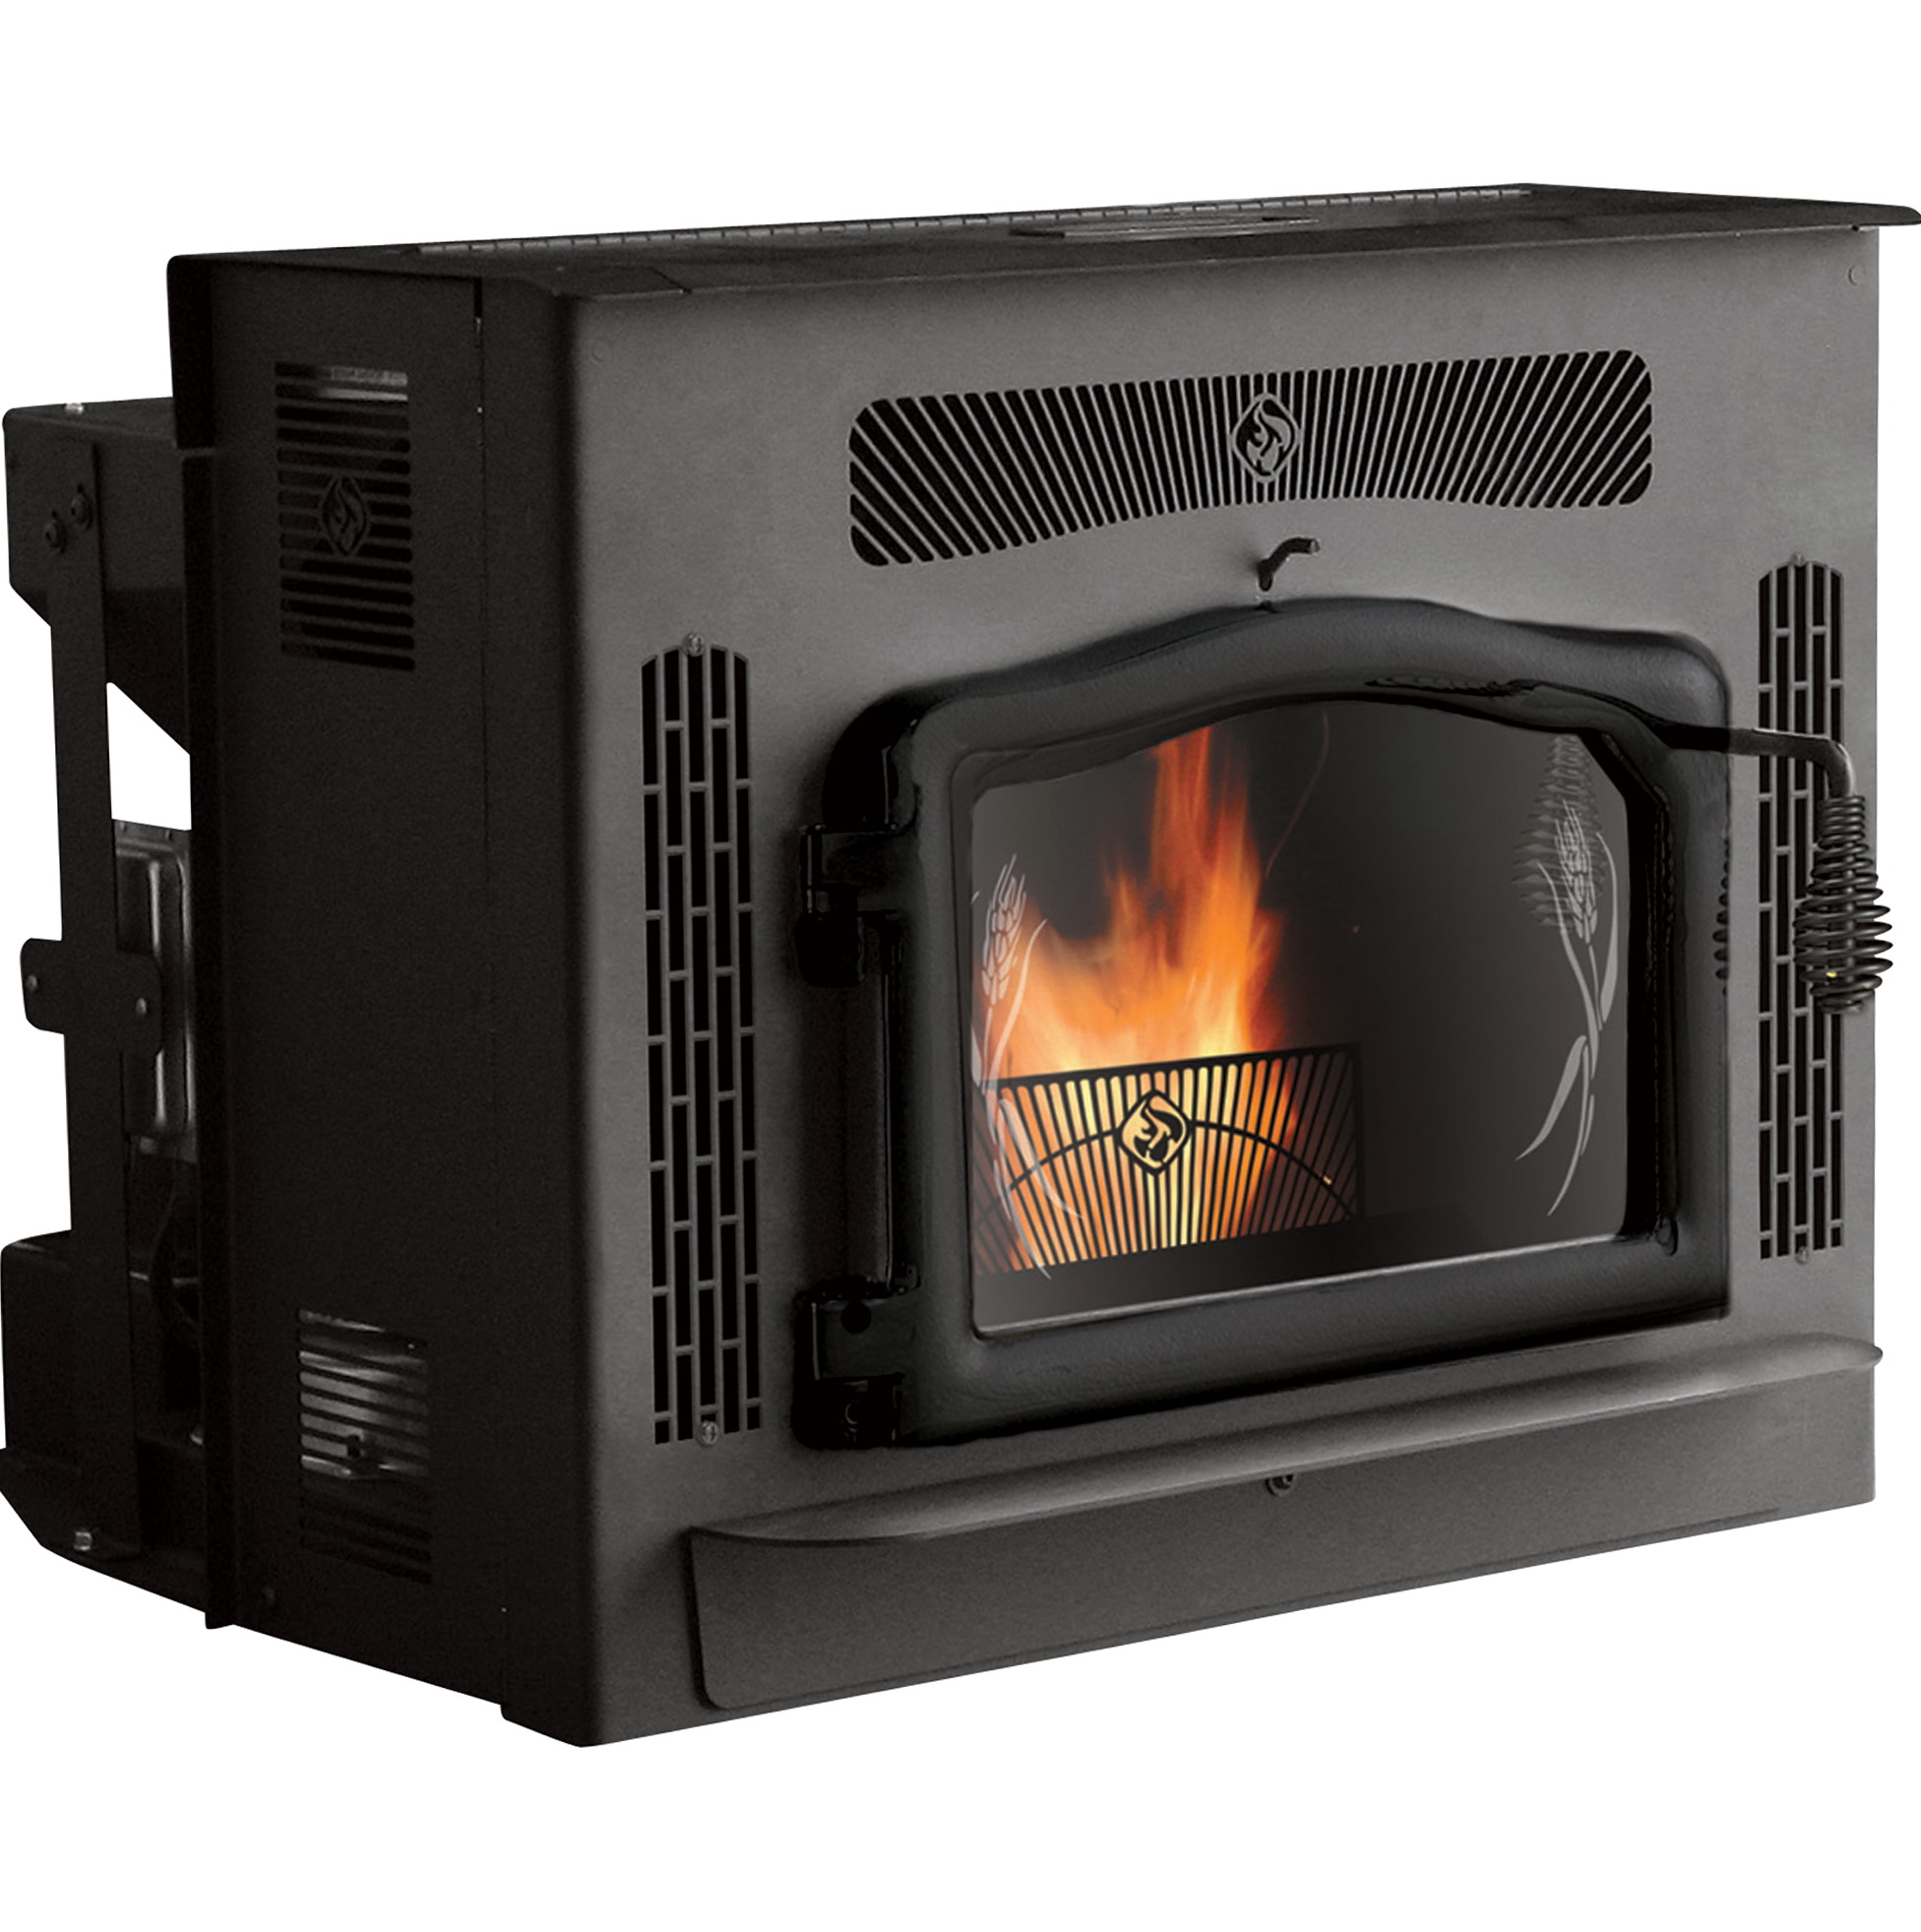 Country Stove And Fireplace Sussex Wisconsin